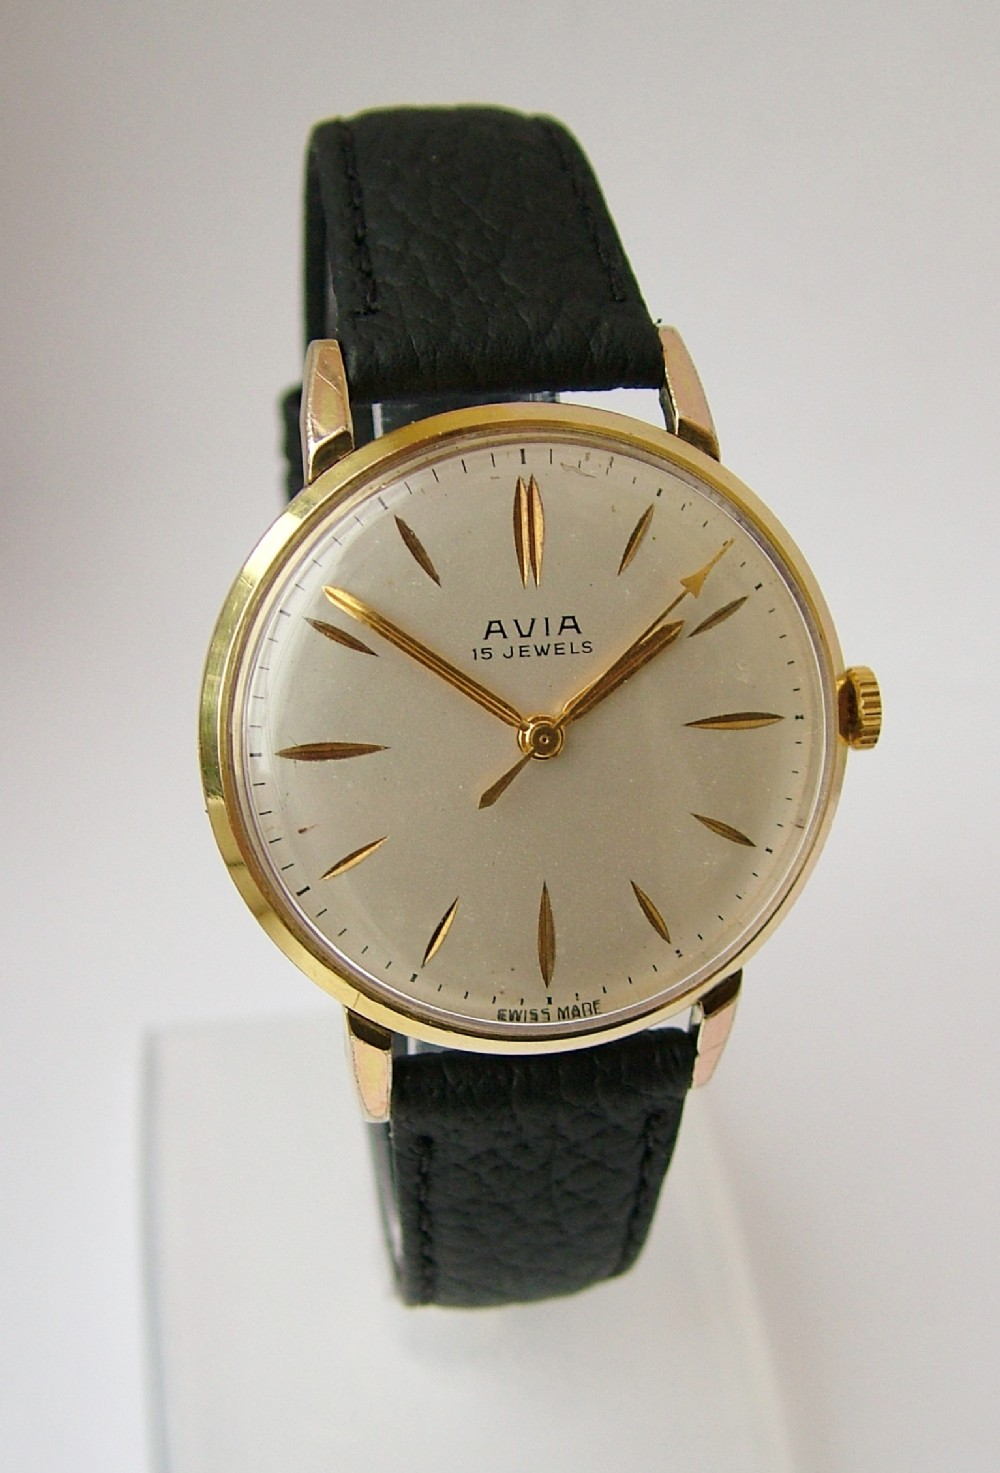 Vintage Gents 1950s Avia Hand Winding Wrist Watch | 323045 ...